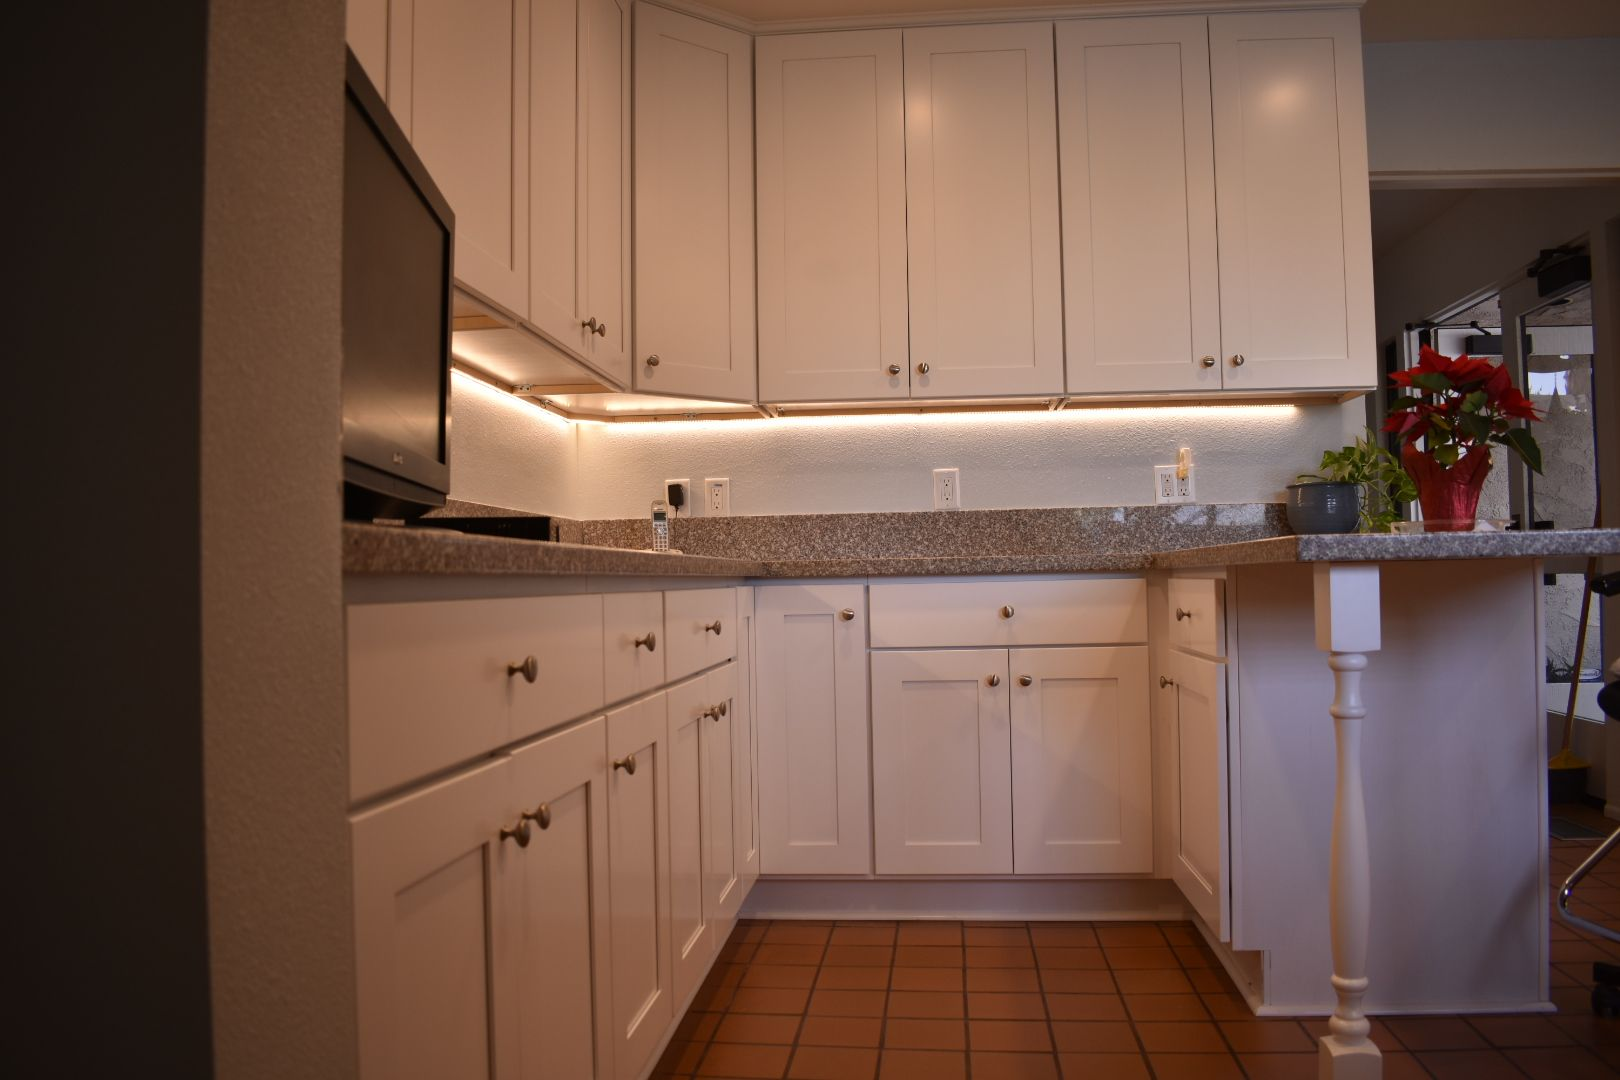 White Painted Shaker Cabinets In Rancho Mirage Shaker Style Cabinets Shaker Cabinets Cabinet Styles